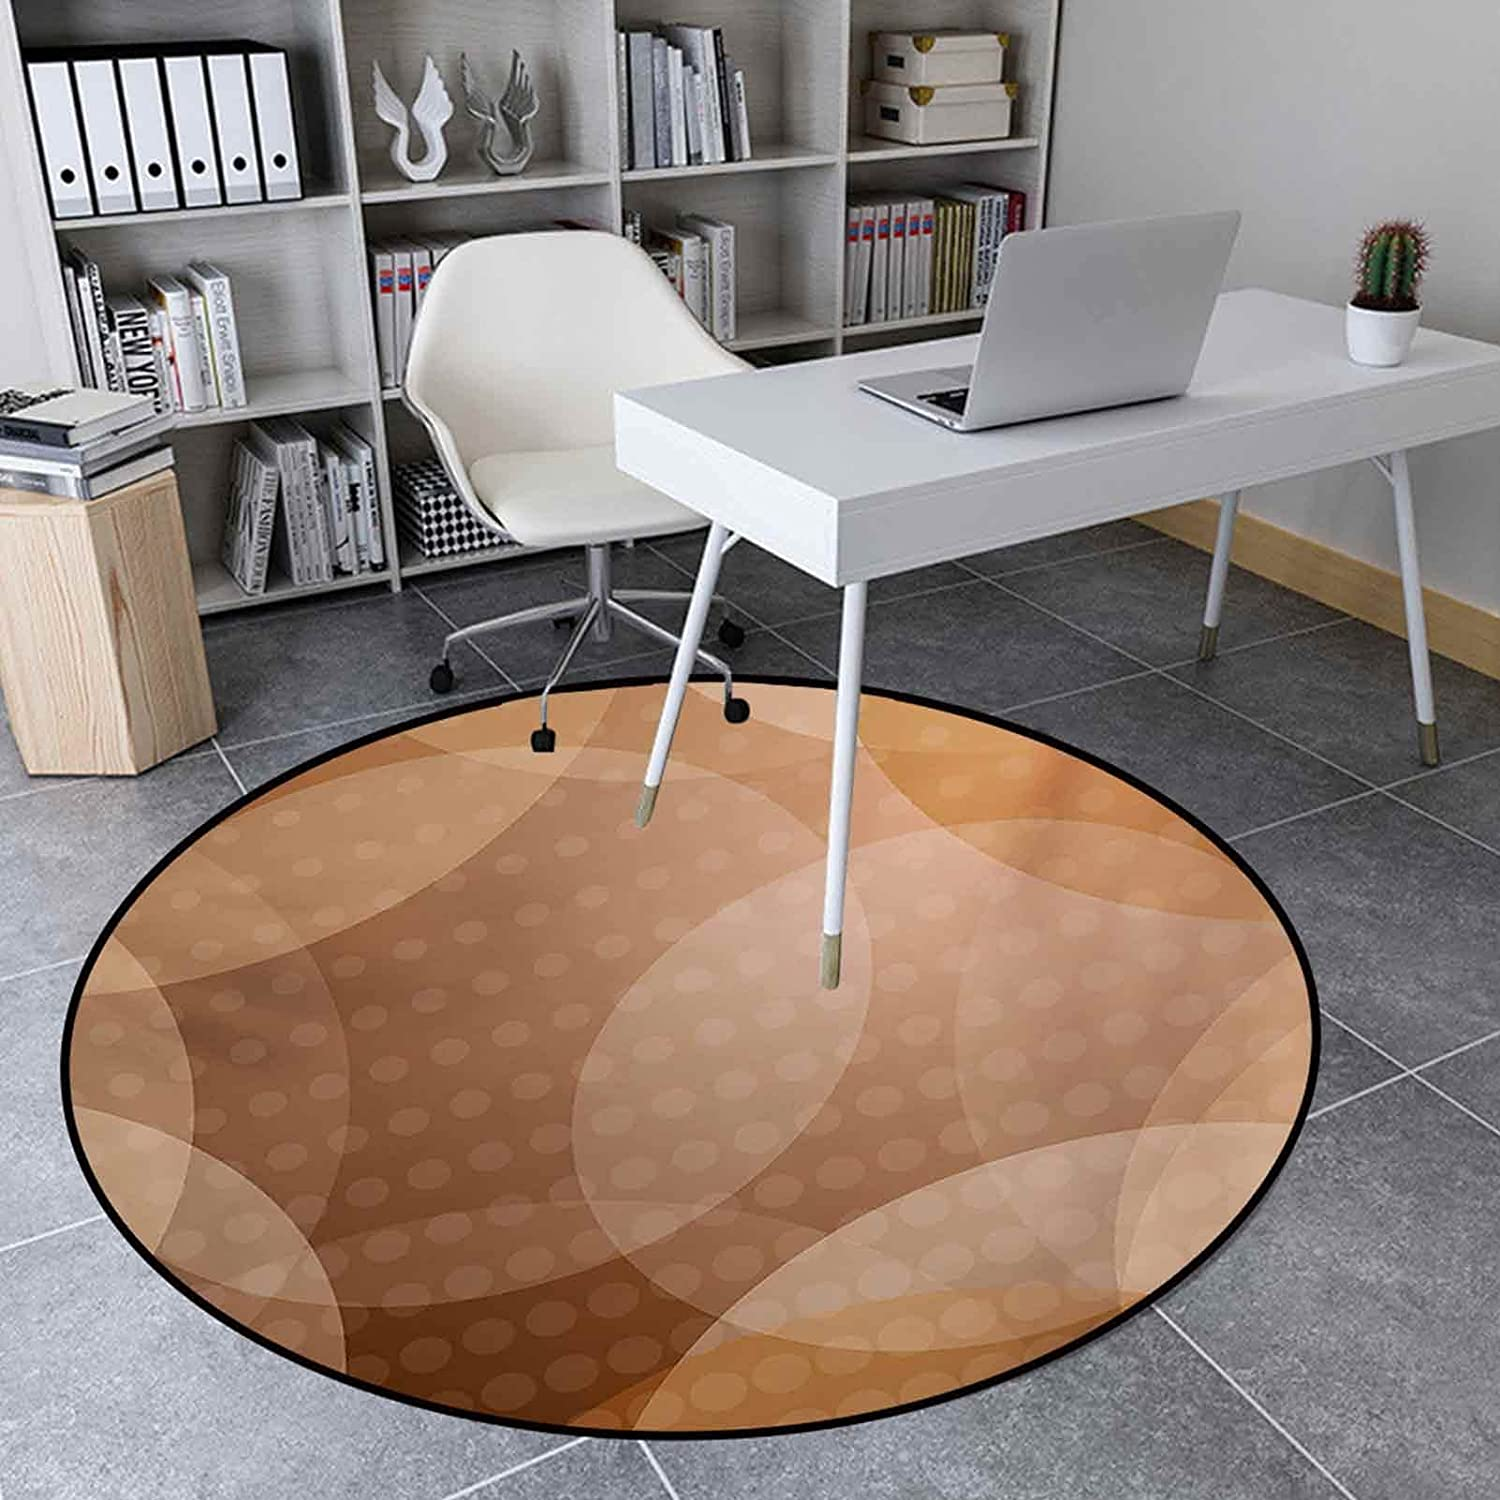 Round Rugs Weekly update 4.9 Ft Japan's largest assortment for Circles with Room Overlapping Living